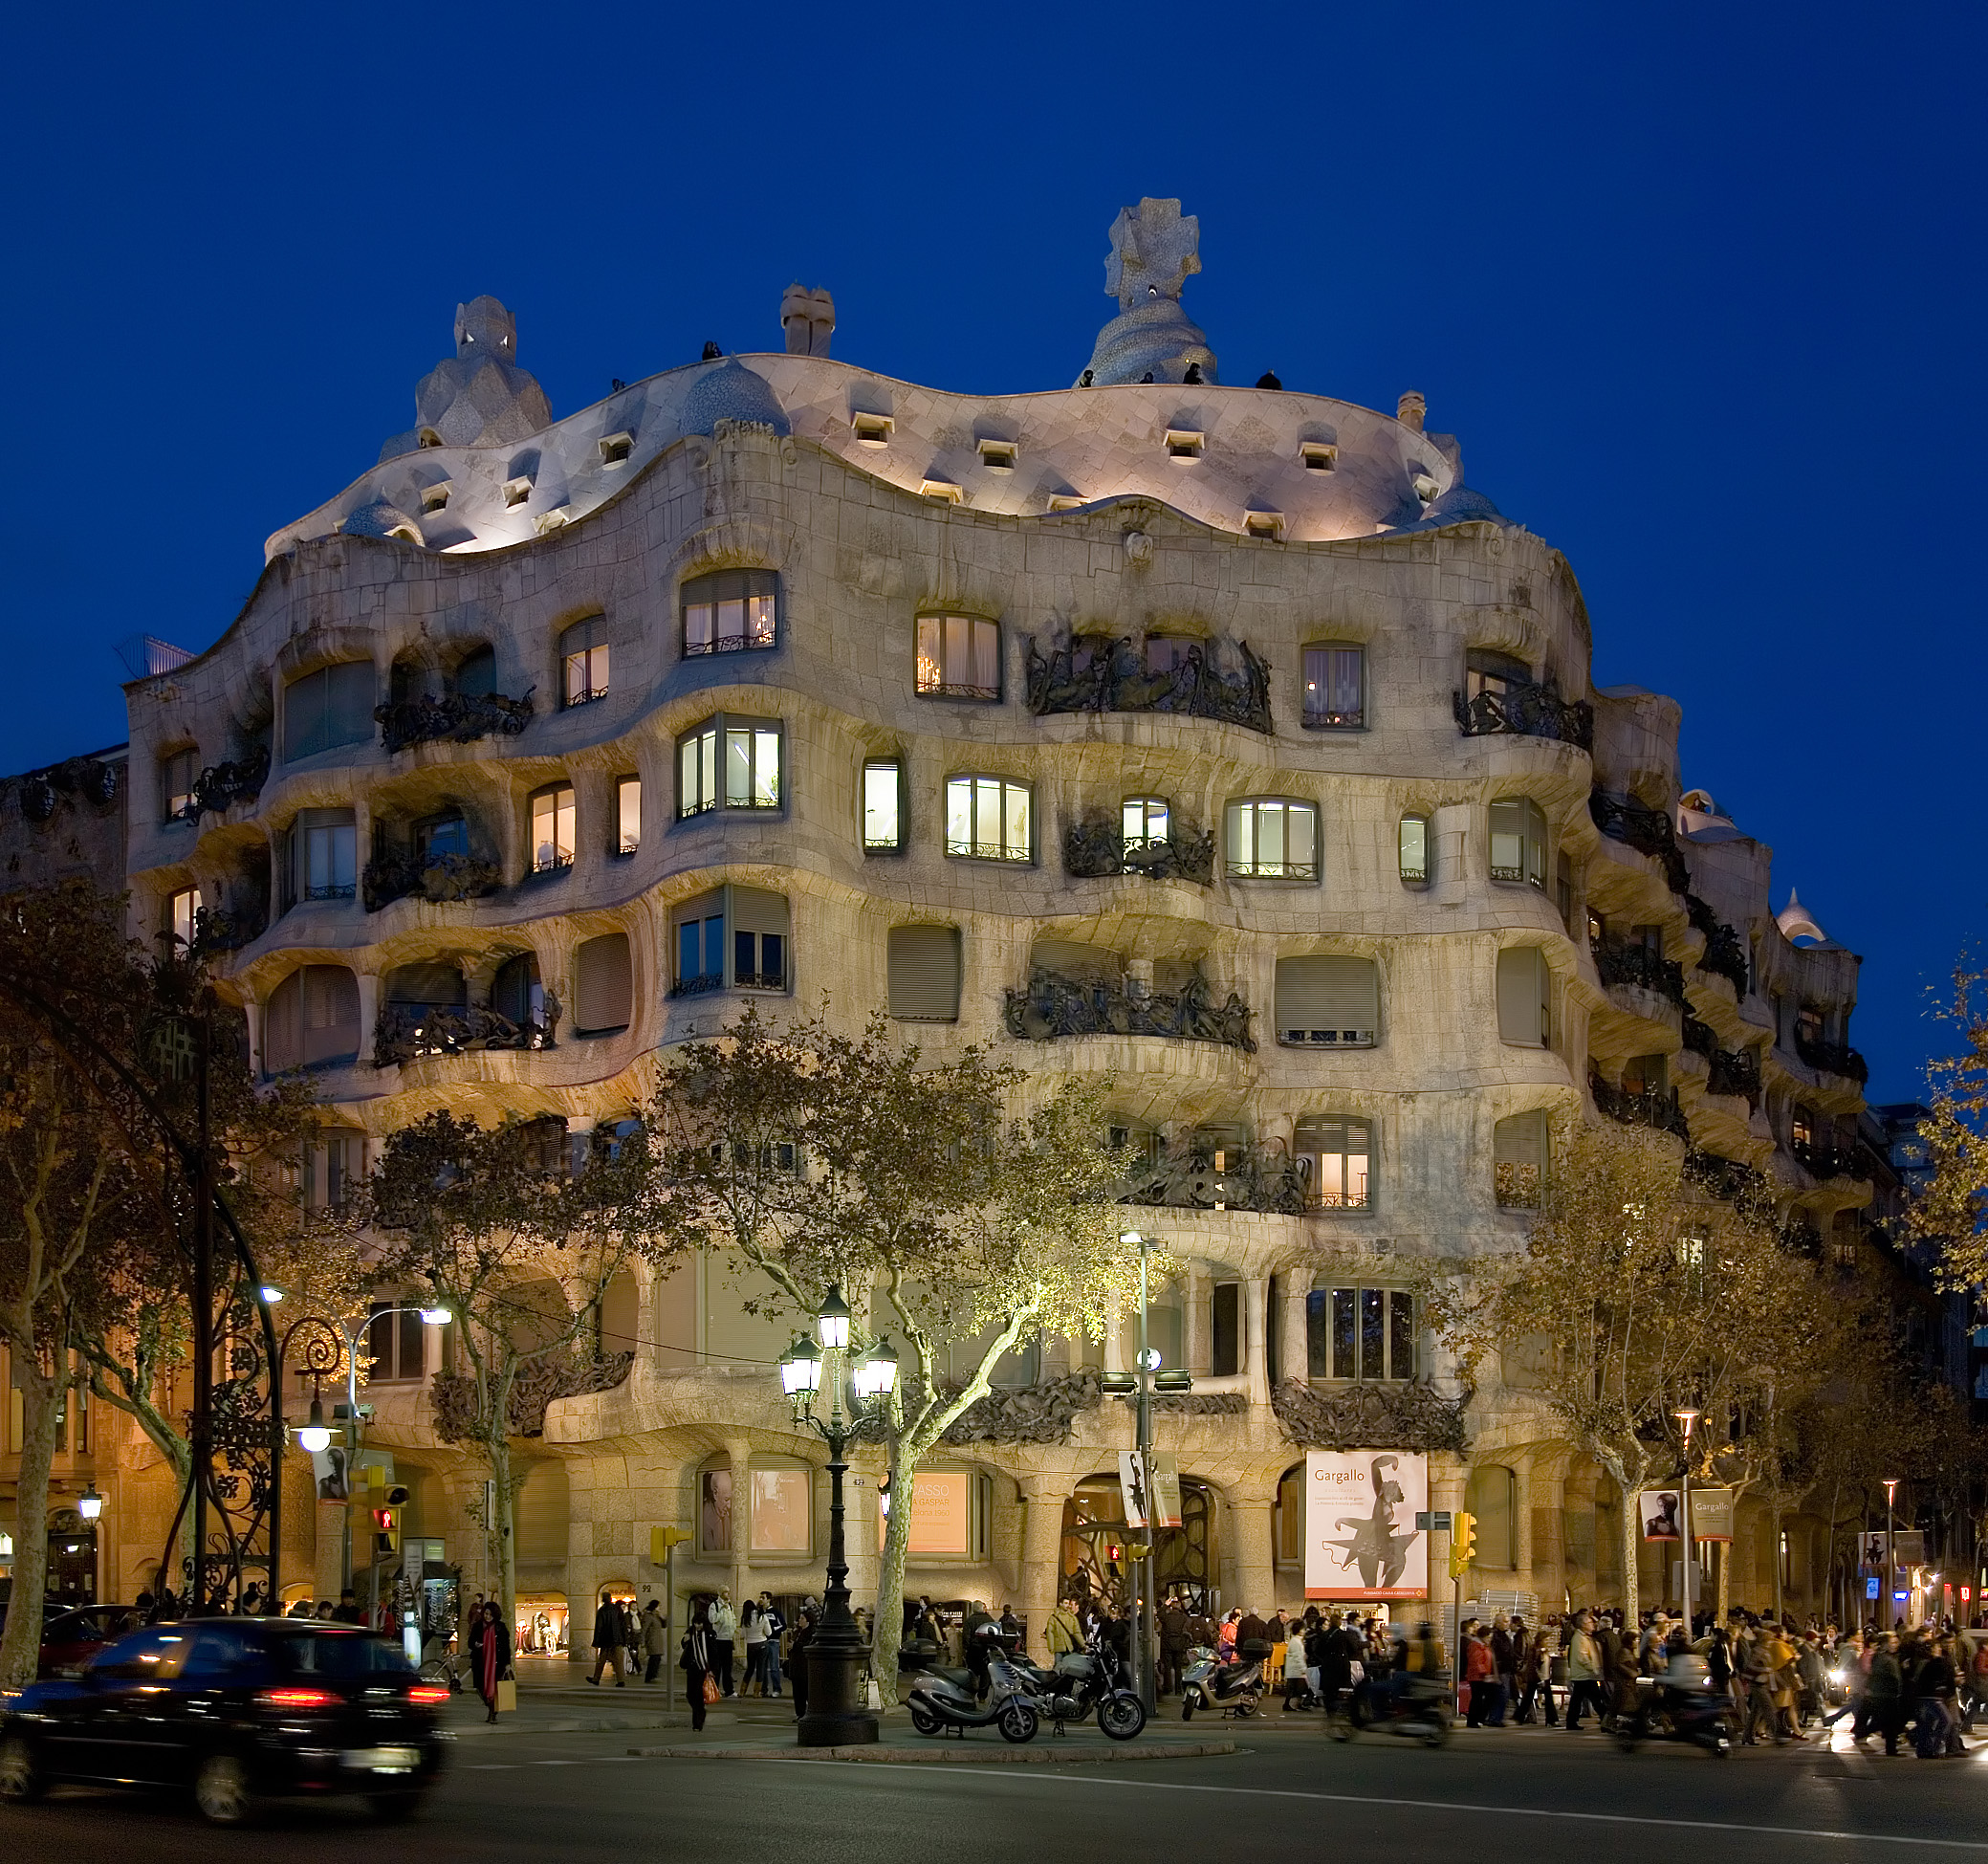 Content 14755623 besides Palau Guell likewise FloorPlans as well 16506 2 further Casa Batllo Barcellona. on houses in palau